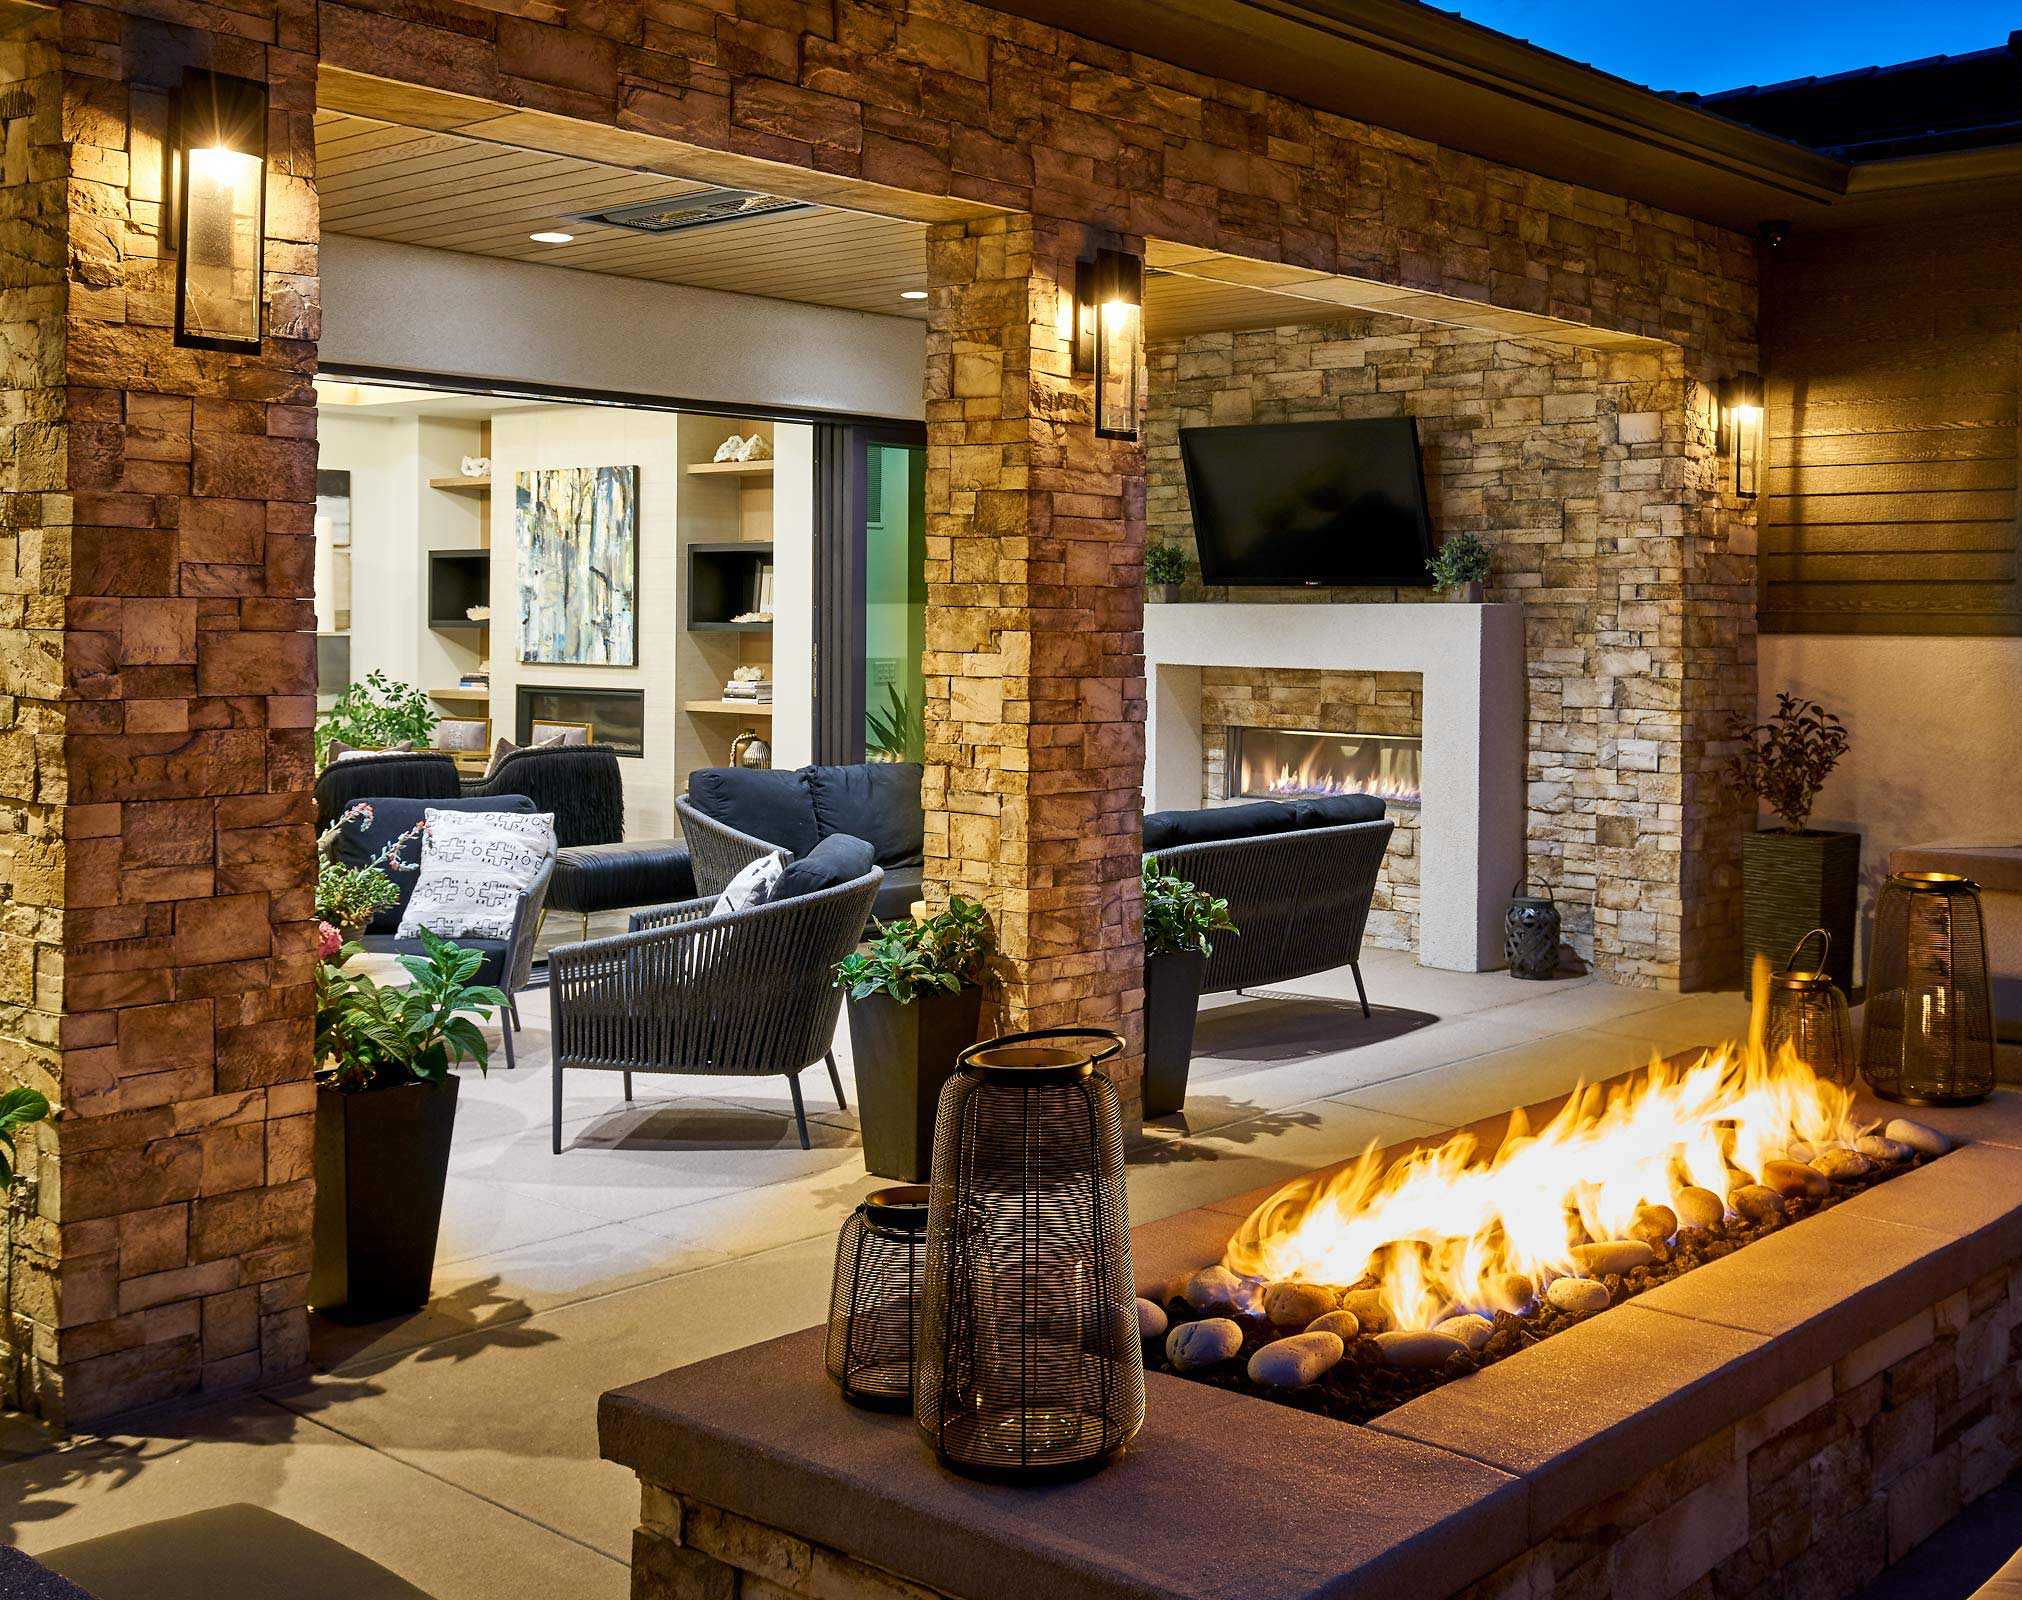 5280 Home Magazine David Patterson Photography of Landscape Architecture  Architecture Colorado Denver Boulder Aspen